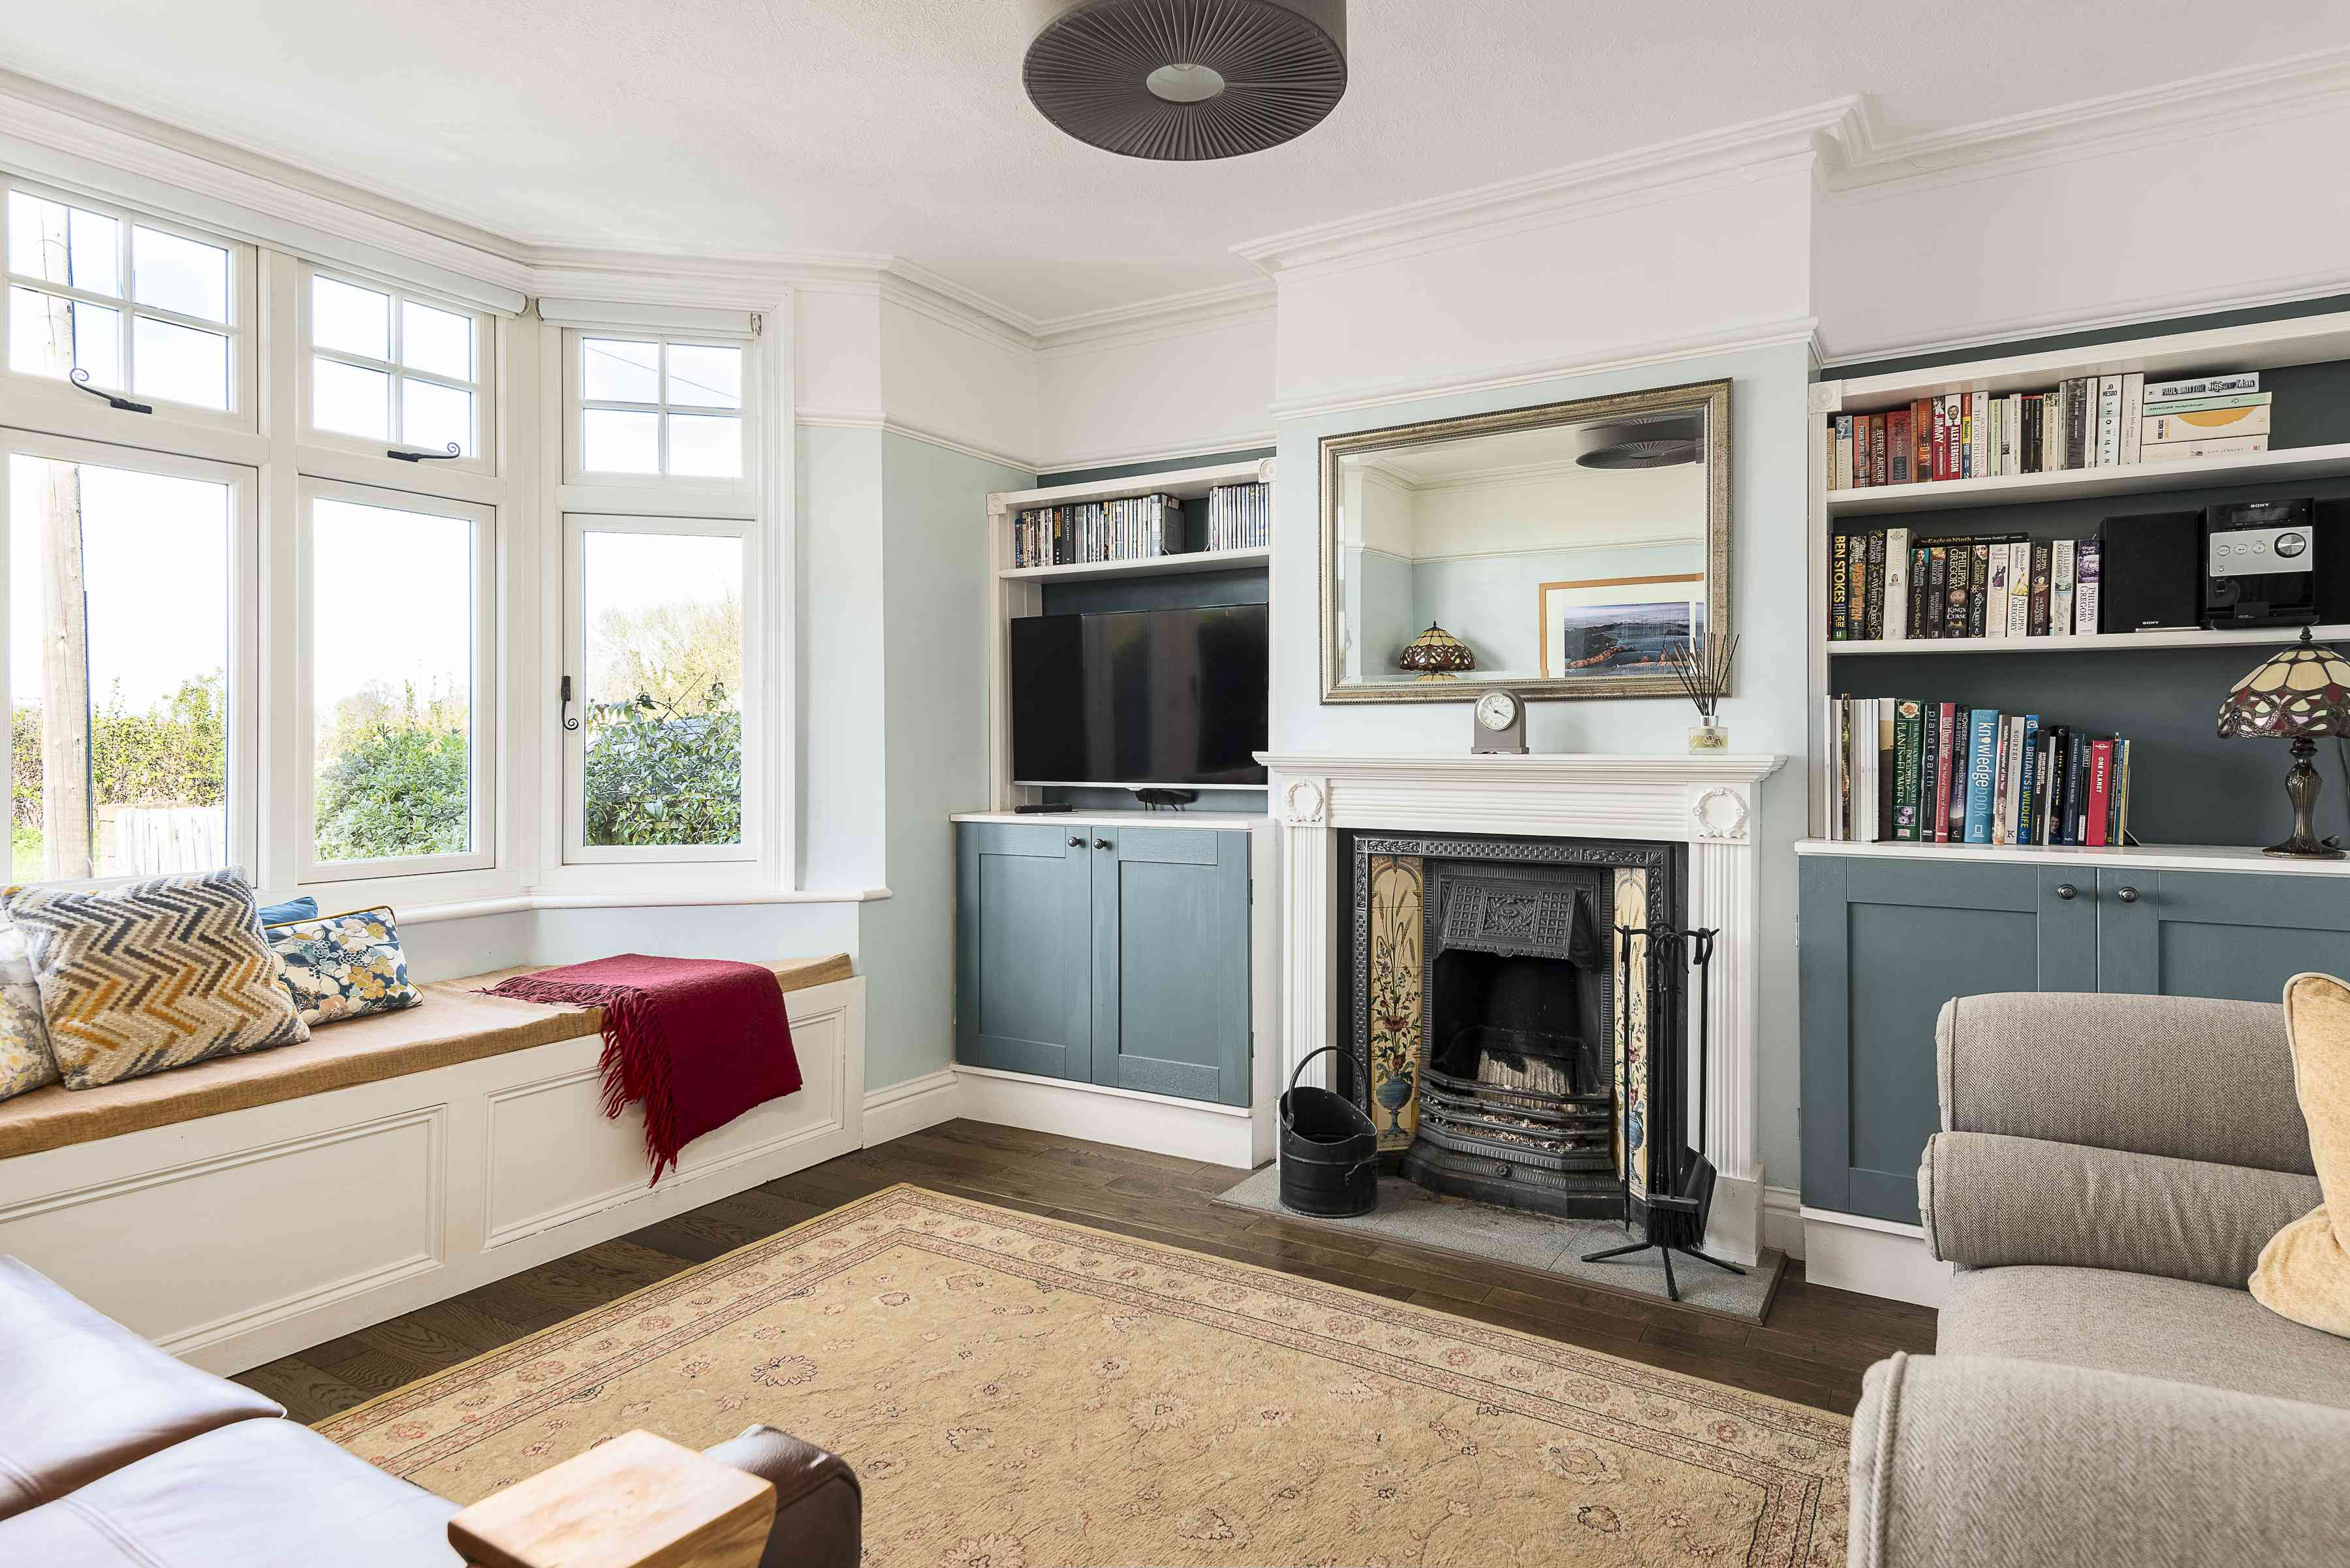 A living room without a coffee table and unstaged